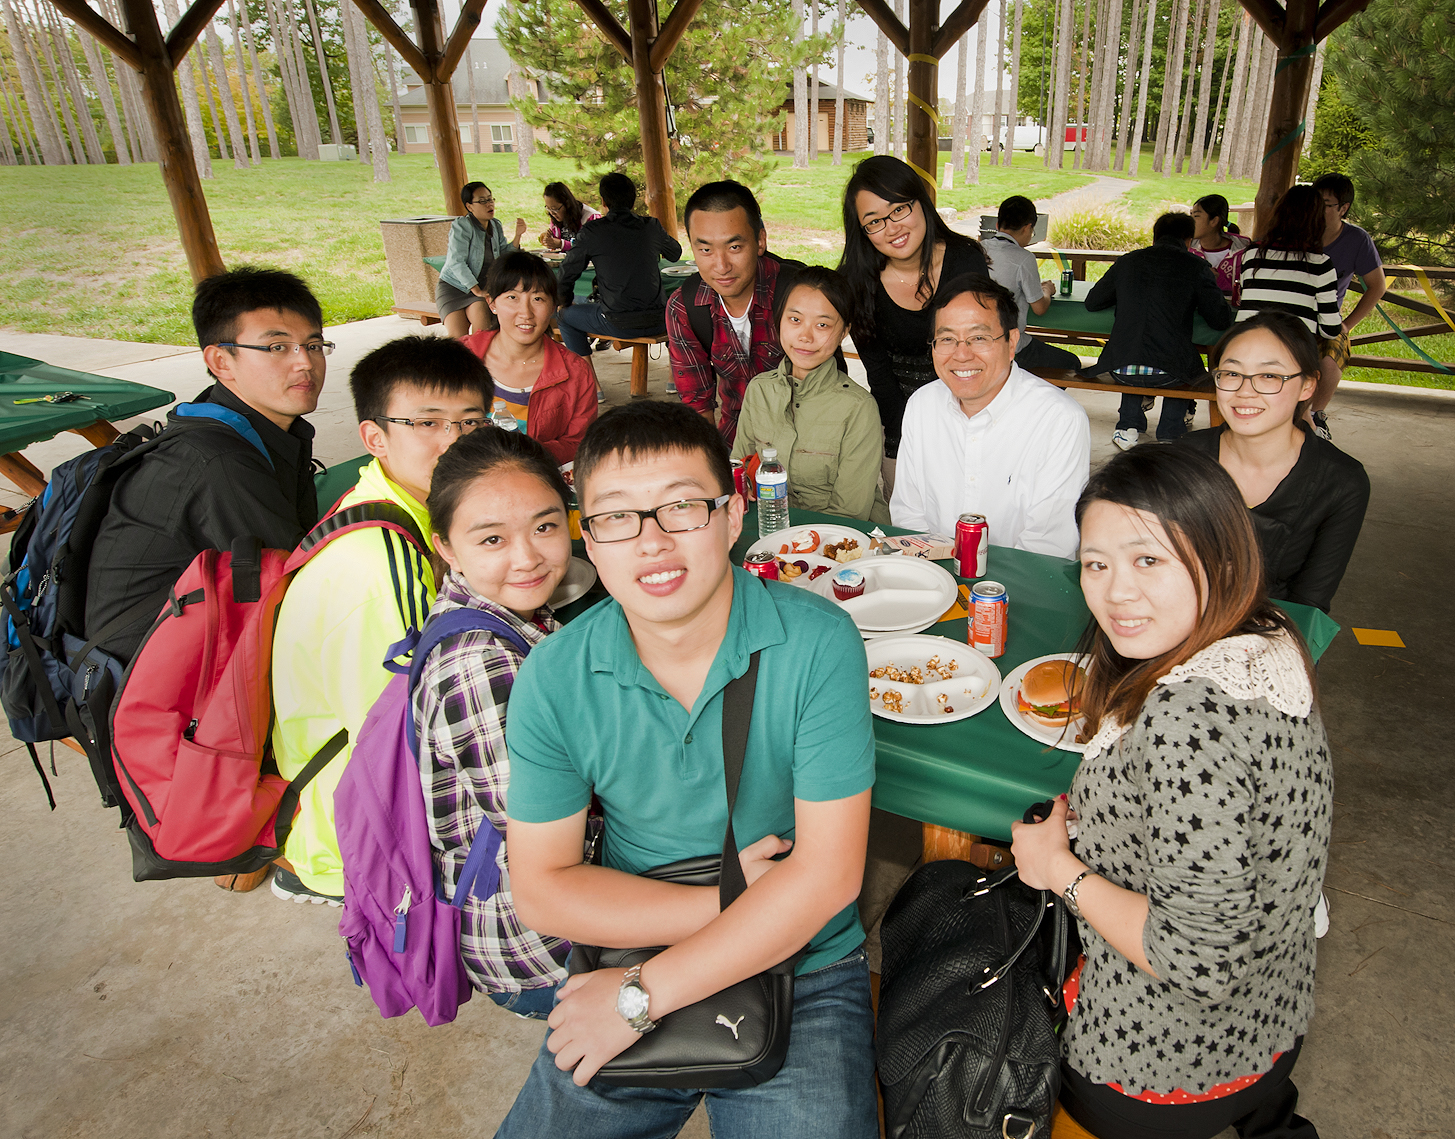 Photo of Chinese students at a picnic table